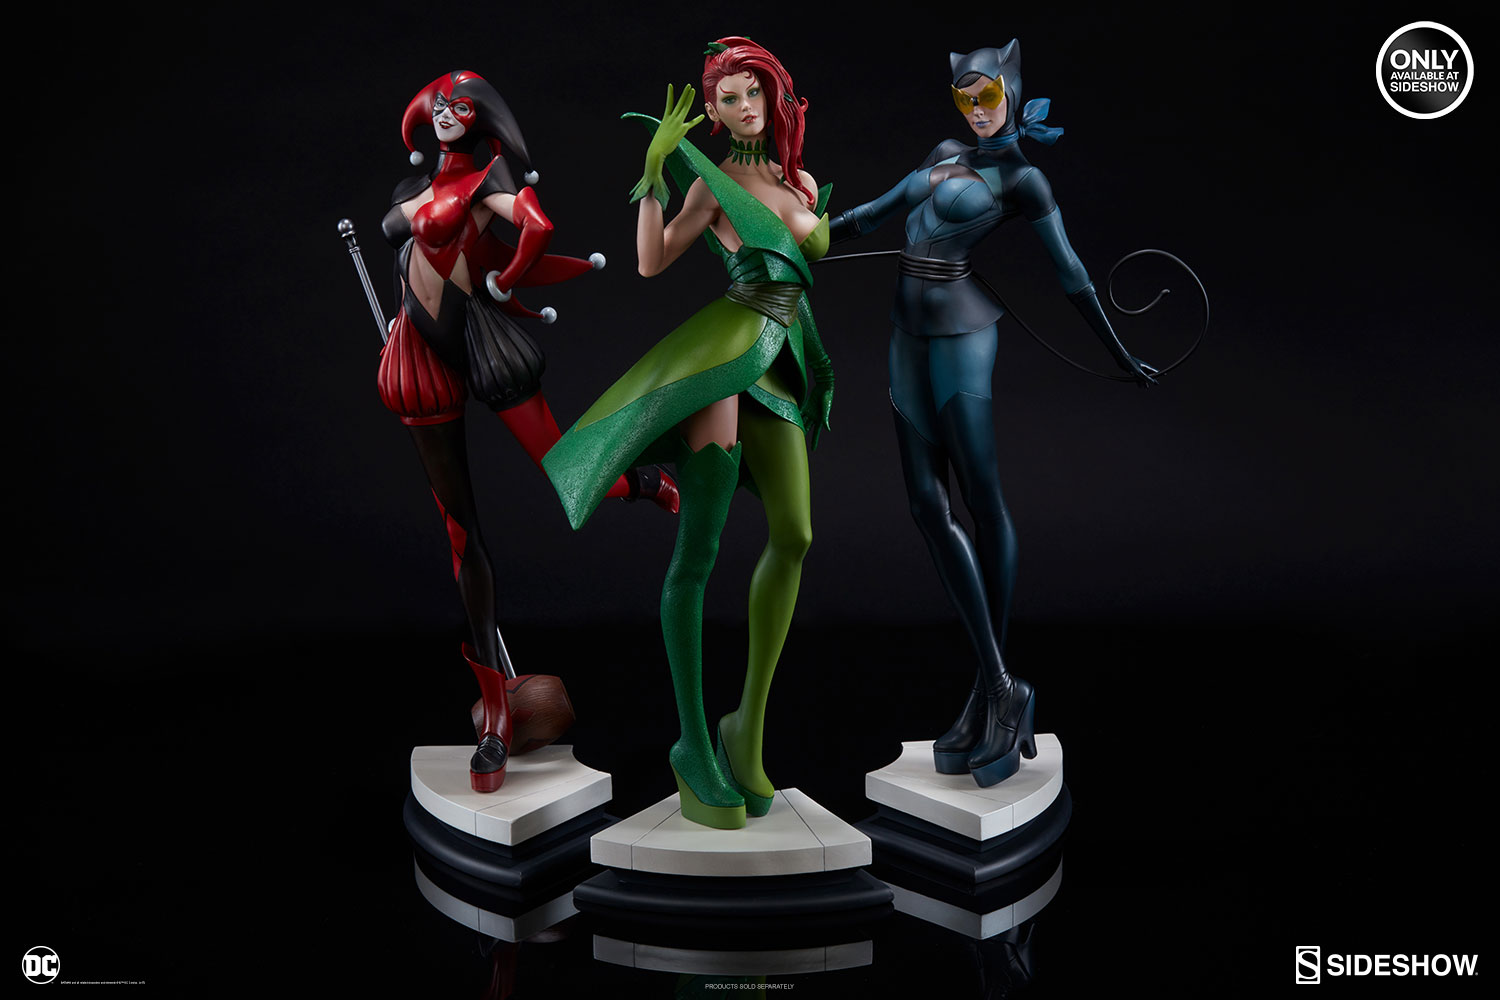 Sideshow Collectibles Gives Fans A Behind The Scenes Look At Gotham City Sirens Statues